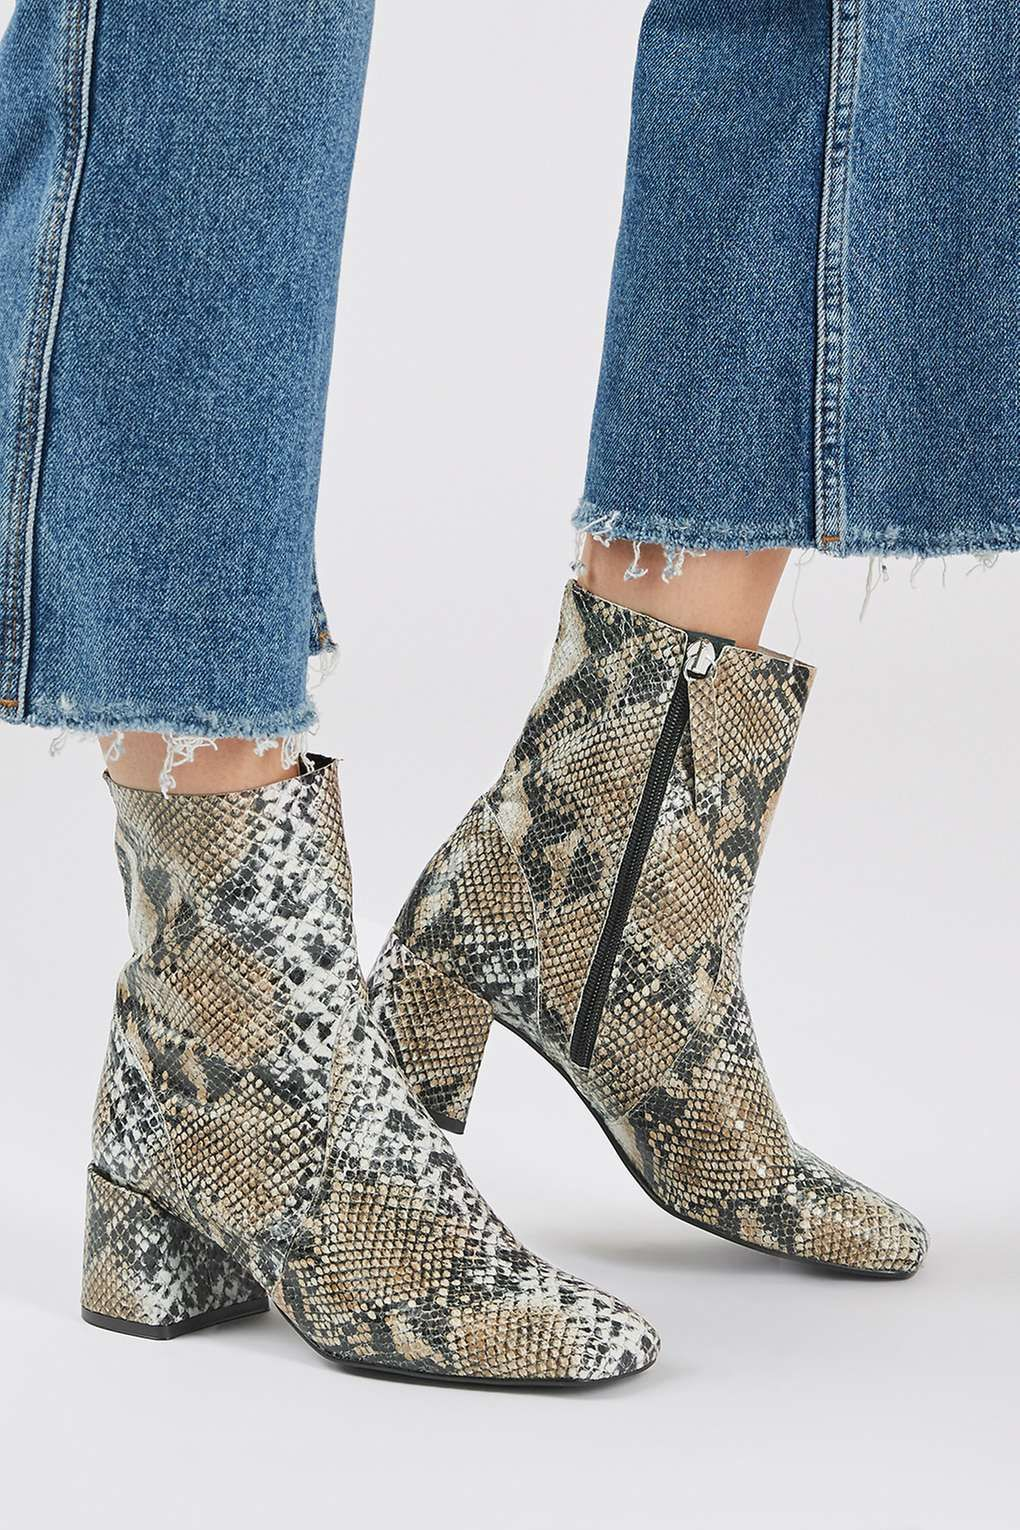 TOPSHOP Blushing Bee Boots cheap collections cheap sale recommend 3rJsWUnZeO